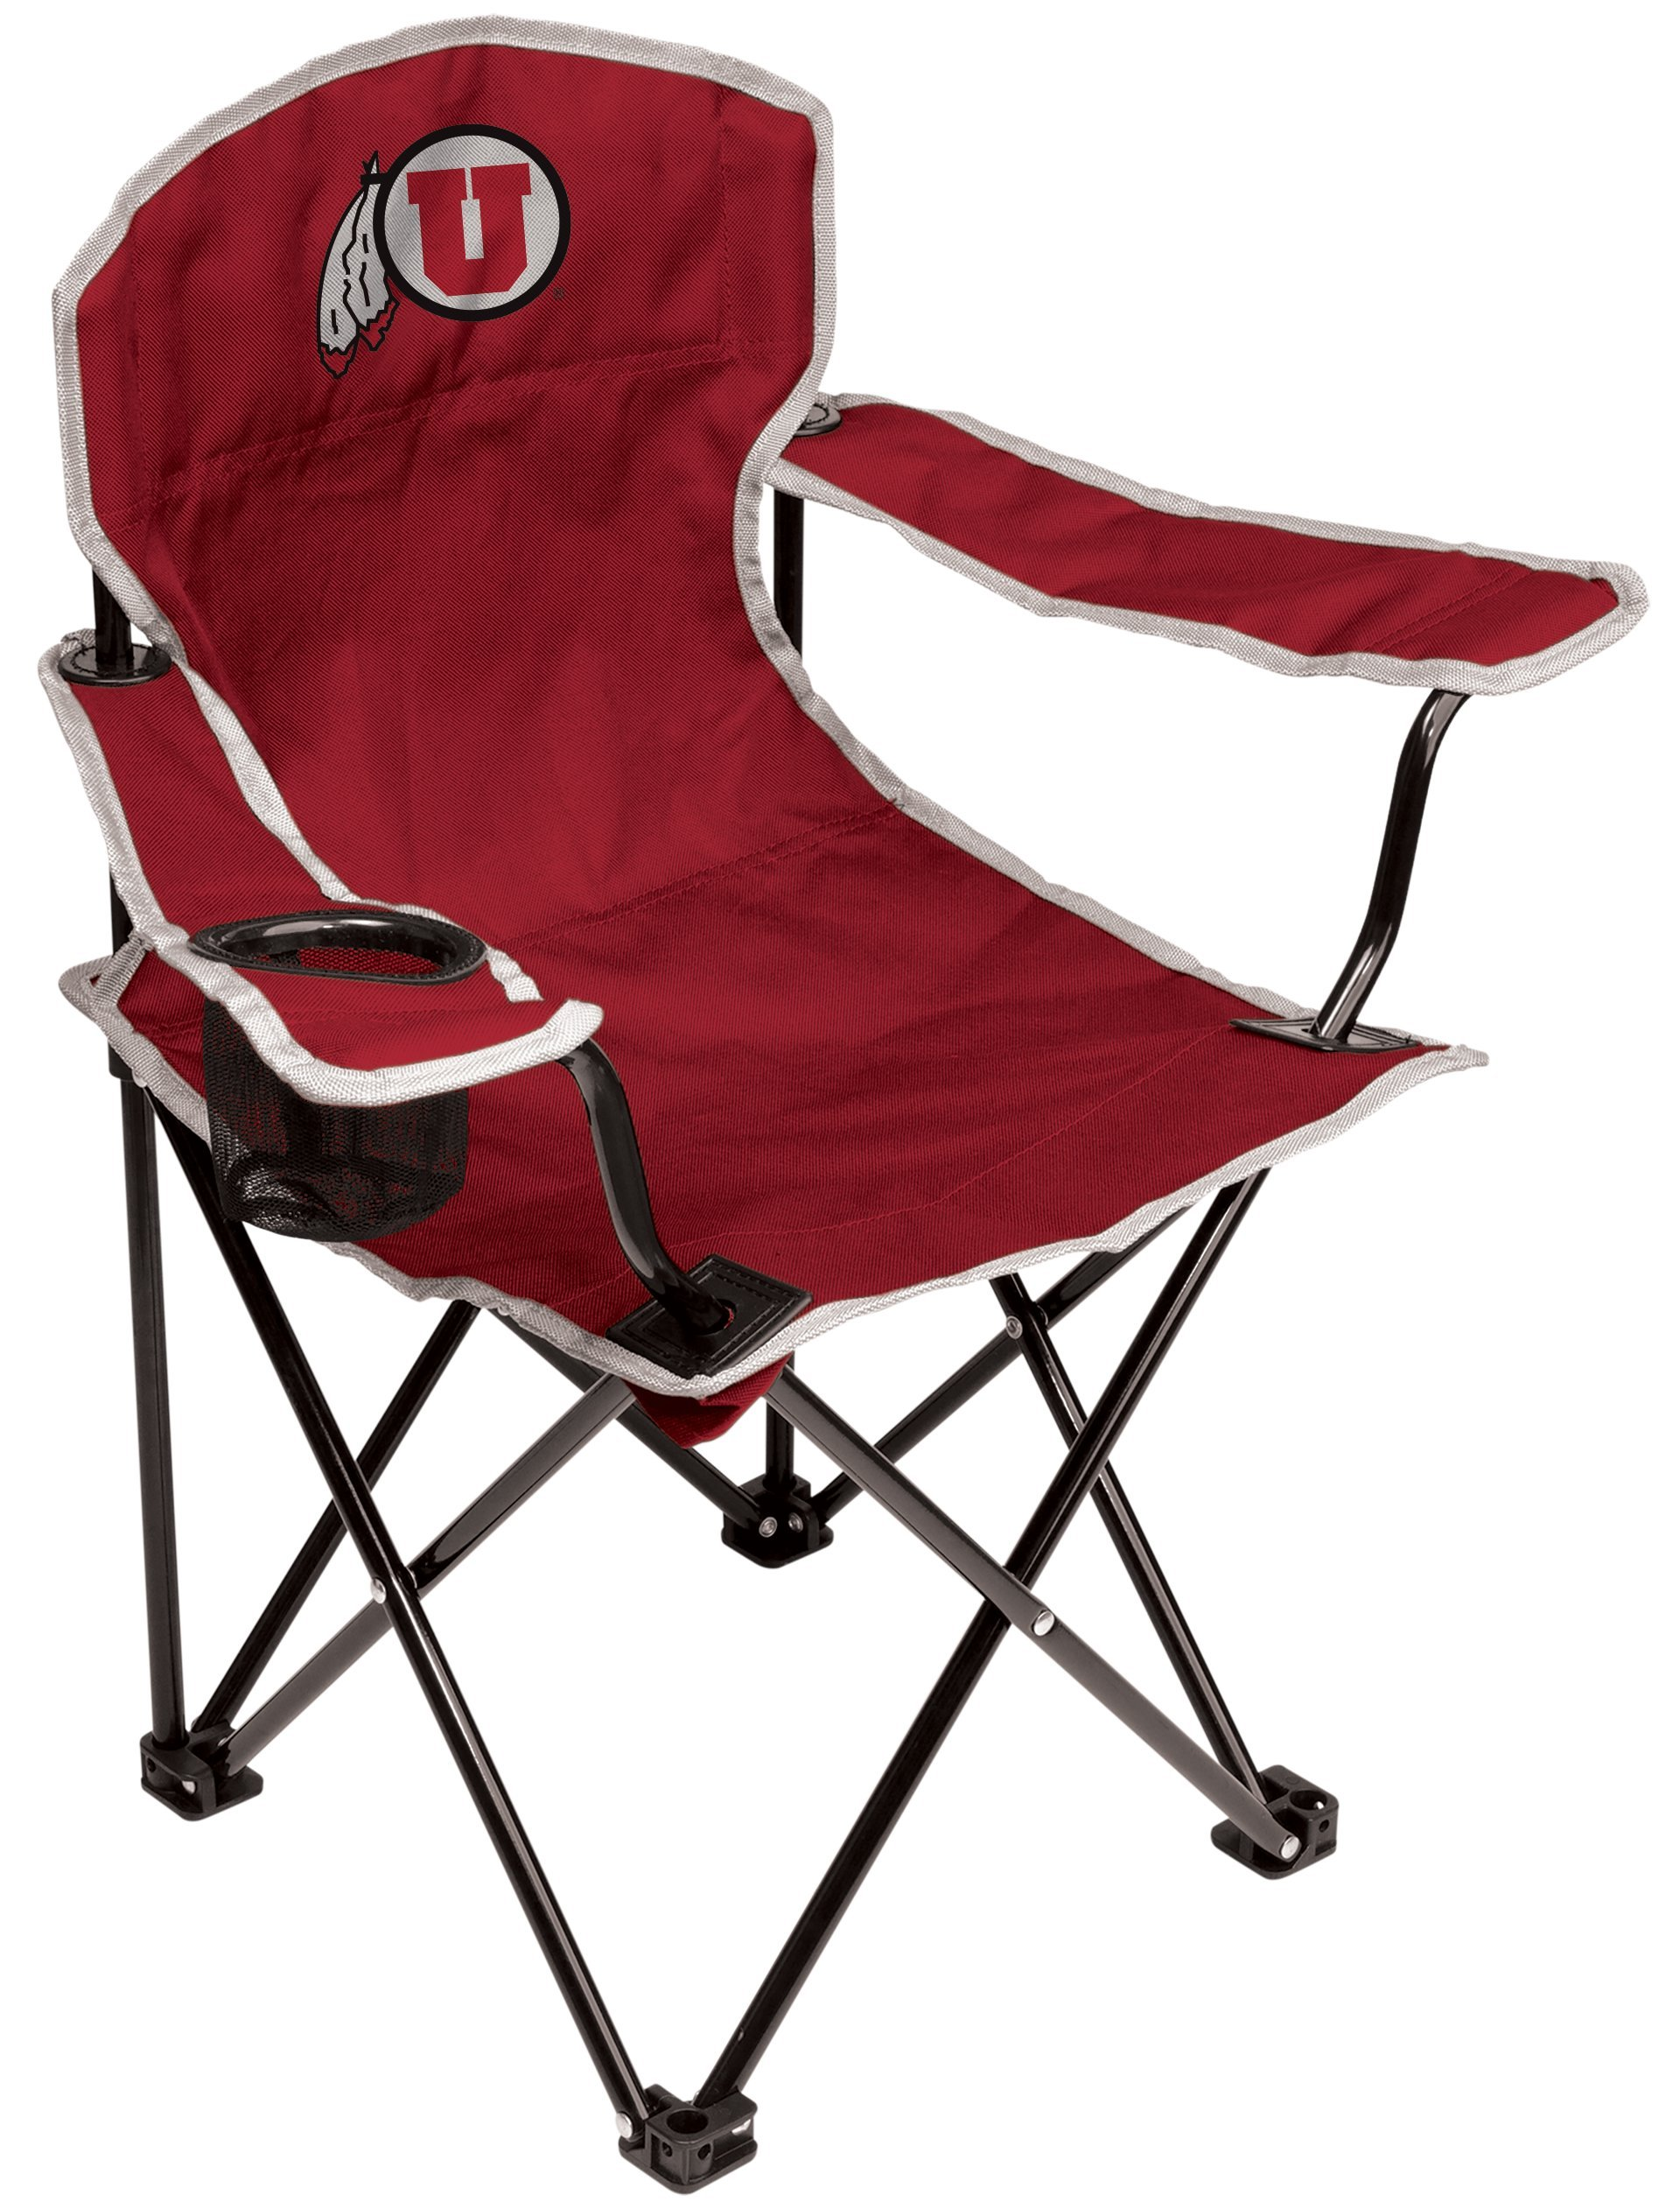 NCAA Utah Utes Youth Folding Chair, Red by Coleman